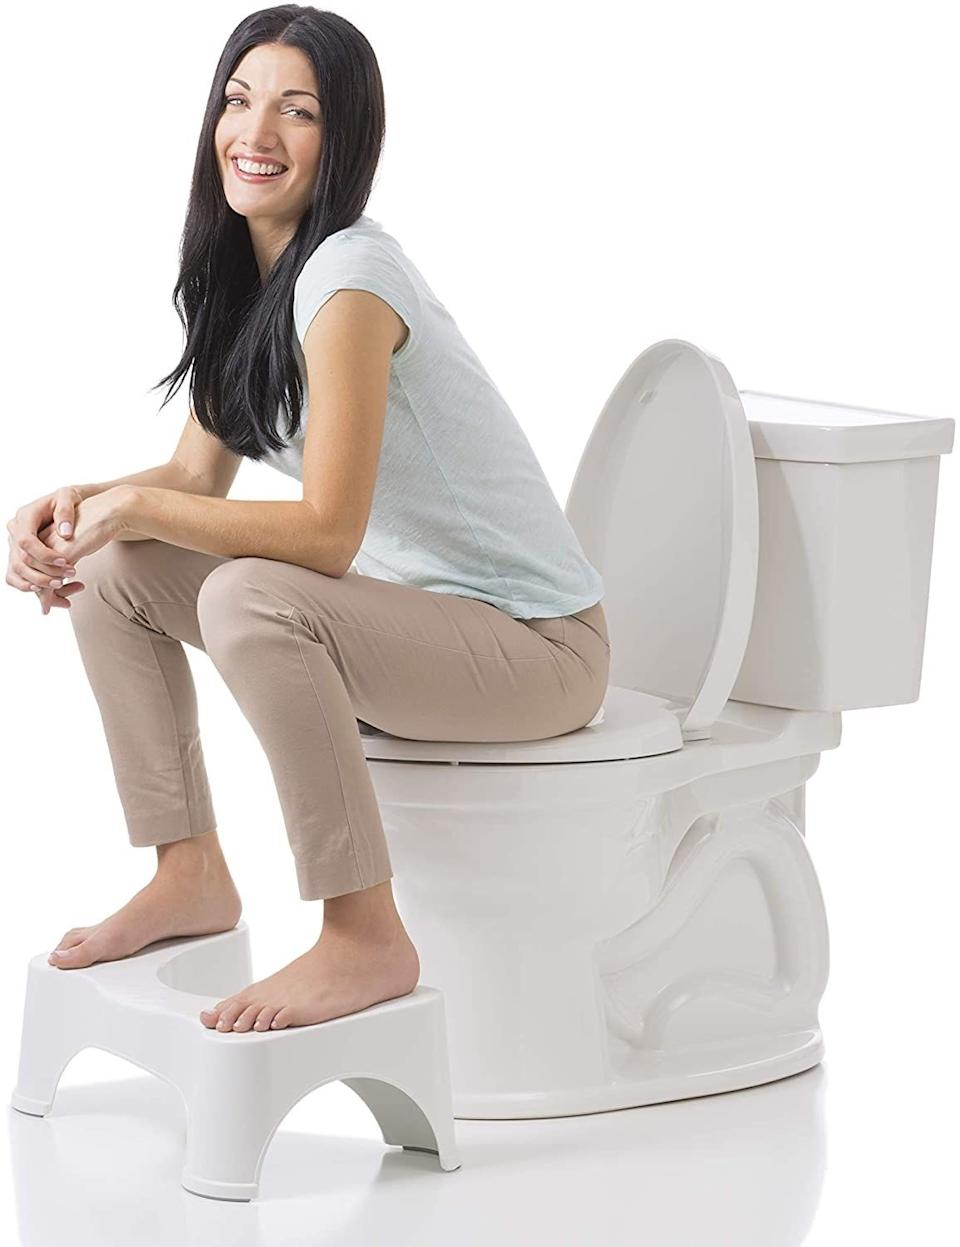 """This is one of those internet-famous stools you can put at the base of your toilet to prop your feet up on while you go. The placement helps align your colon to make the process a whole lot easier and faster (like, 20 seconds compared to several minutes).<br /><br /><strong>Promising review:</strong>""""First off, let me say I'd marry this if I could. I love Squatty Potty and Squatty Potty loves me. Anyways, back to my review.<strong>I've struggled with... inconsistency in the bathroom if you catch my drift.</strong>I've tried everything from laxatives (natural and non) to drinking hella water and increasing my coffee intake. I knew I had to go, but I never really went.. all the way. But no longer! There's a reason these things are selling.<strong>It's so much easier on your body in almost every aspect. After you use a Squatty Potty, every potty without one just seems... sad and unsatisfying.</strong>I'm thinking about buying another one and taking it to the office. No shame."""" —<a href=""""https://www.amazon.com/gp/customer-reviews/R4XWUQCD5OY0Z?ASIN=B00ESKVN7W&ie=UTF8&linkCode=ll2&tag=huffpost-bfsyndication-20&linkId=52226e2f1365fa9b1e724ec9b426f56a&language=en_US&ref_=as_li_ss_tl"""" target=""""_blank"""" rel=""""noopener noreferrer"""">Gbell<br /></a><br /><strong>Get it from Amazon for<a href=""""https://www.amazon.com/Squatty-Potty-Original-Bathroom-Toilet/dp/B00ESKVN7W?&linkCode=ll1&tag=huffpost-bfsyndication-20&linkId=c9c5d684e5ab0ad3a3b95048f1e7f82d&language=en_US&ref_=as_li_ss_tl"""" target=""""_blank"""" rel=""""noopener noreferrer"""">$24.99</a>.</strong>"""